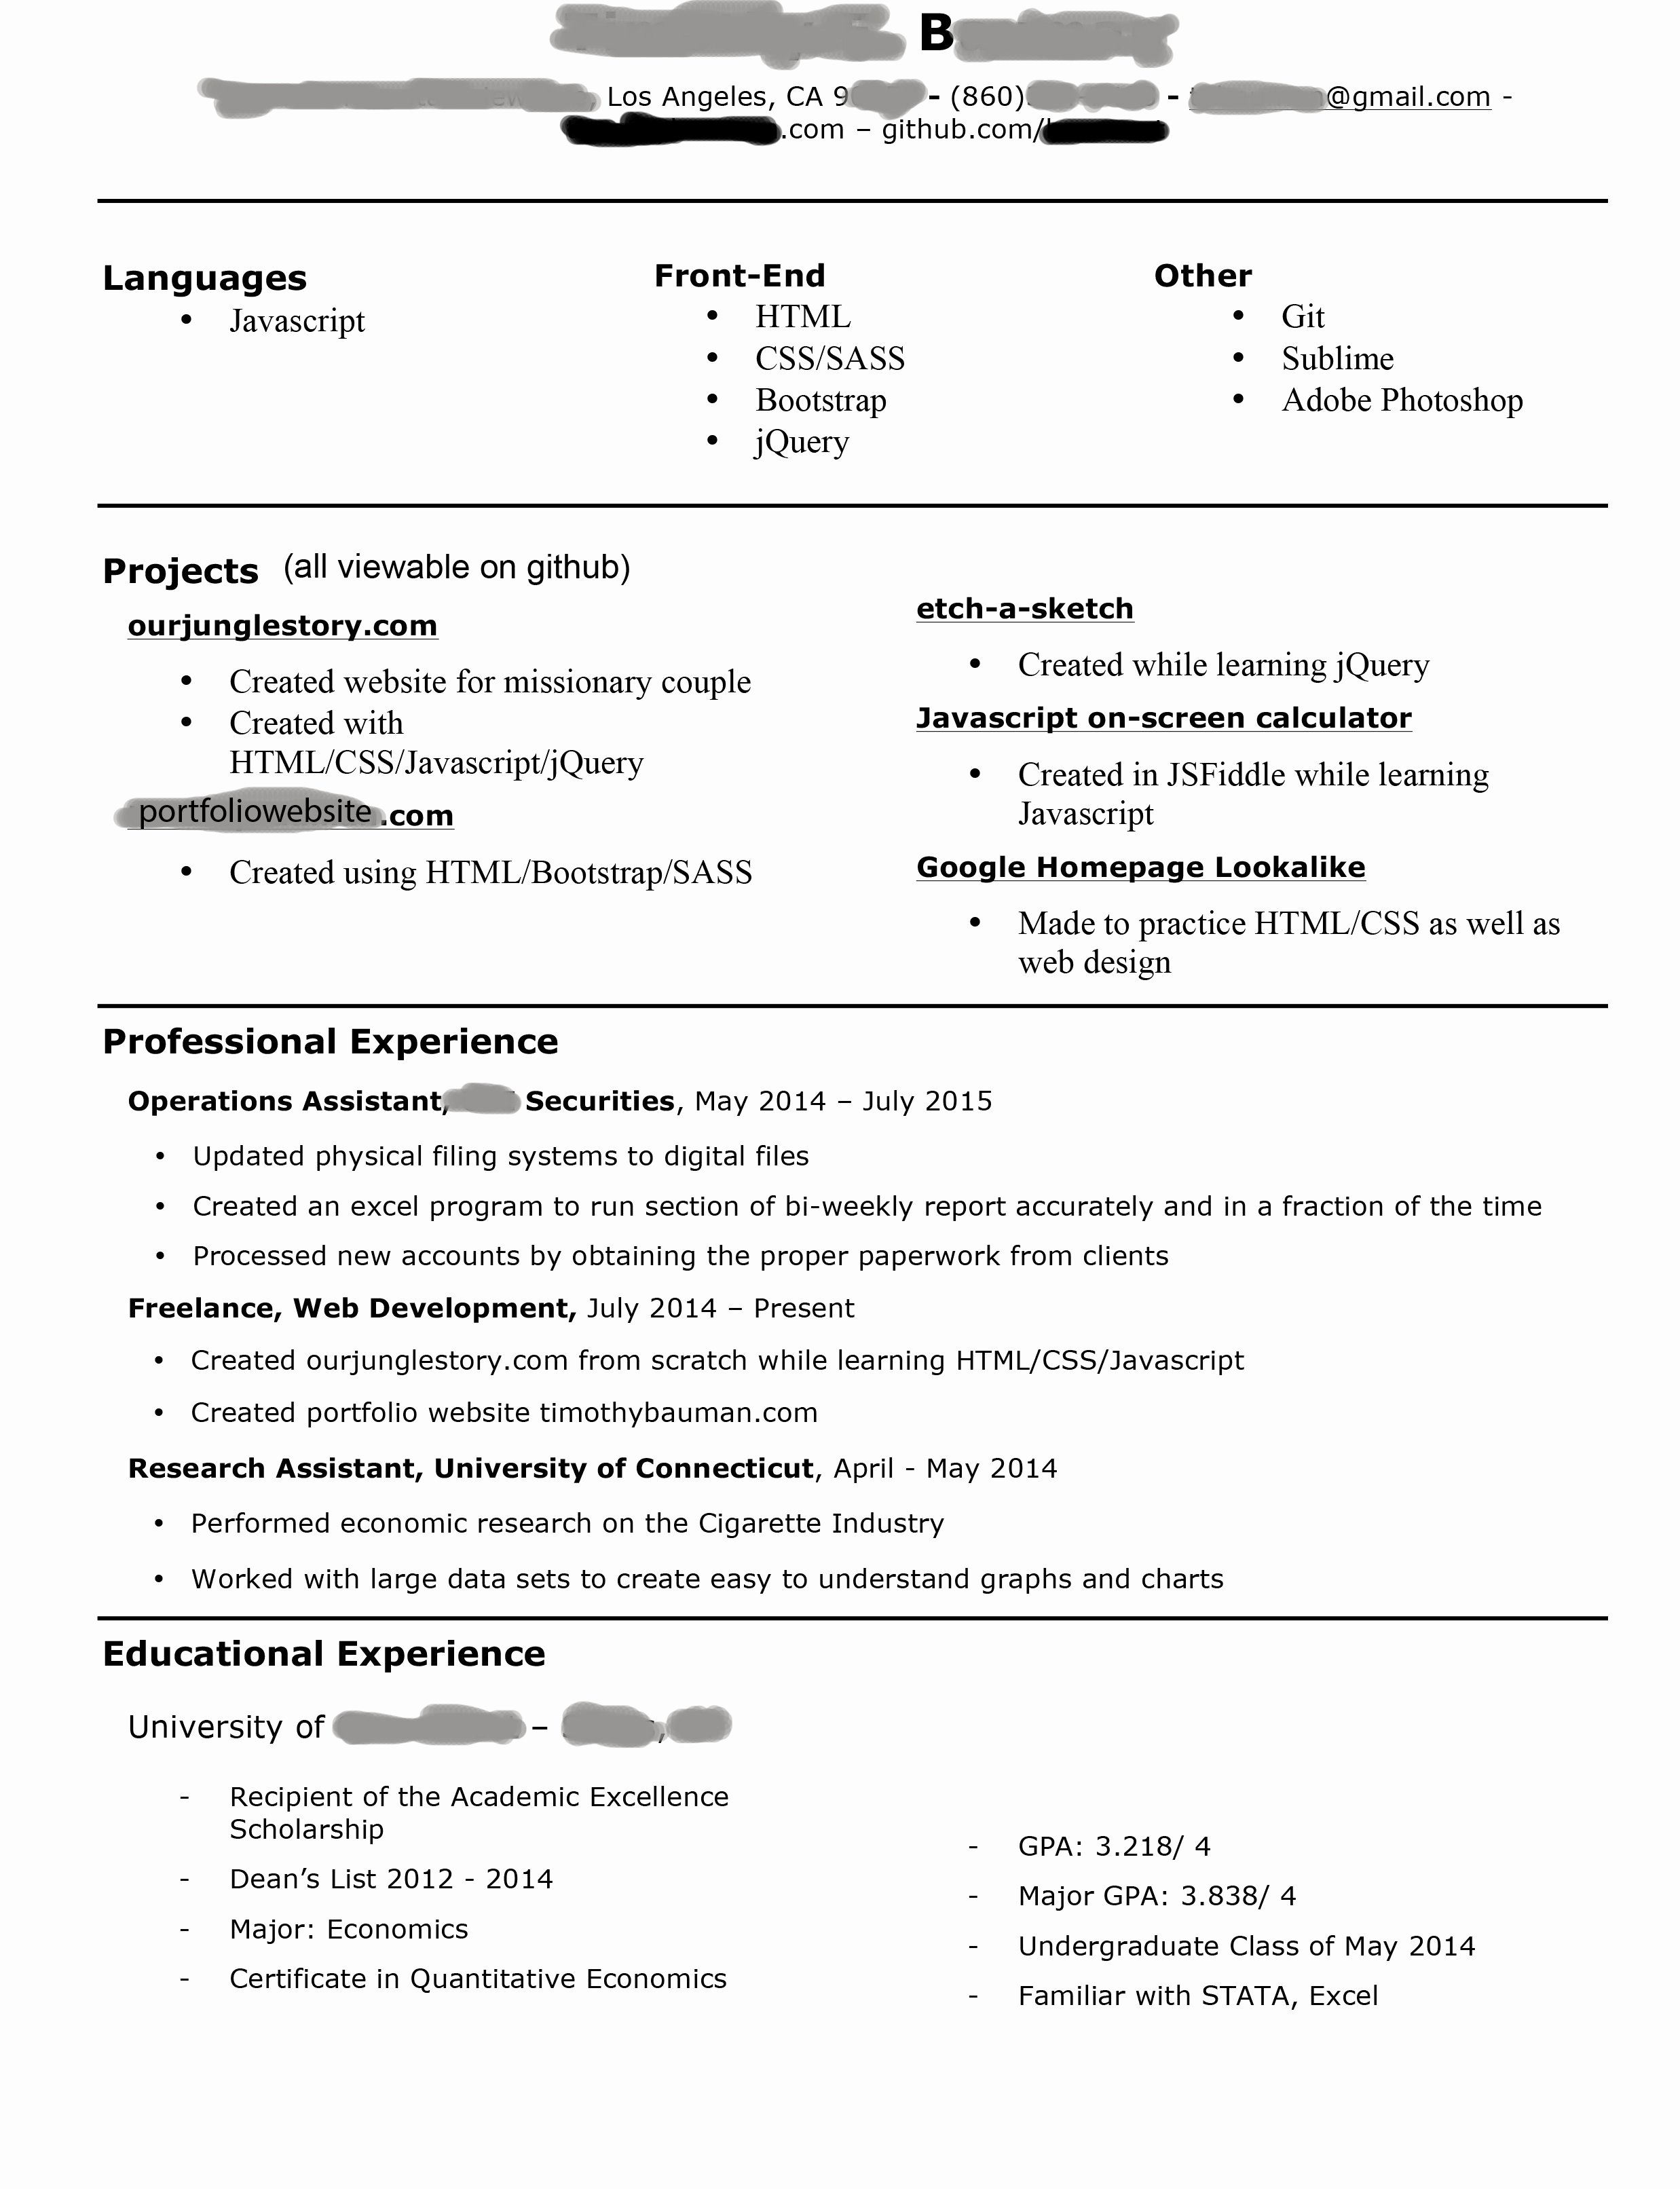 Junior Web Developer Resume Awesome Starting to Look for Jobs as A Jr Front End Web Developer How S My Resume Look Resumes